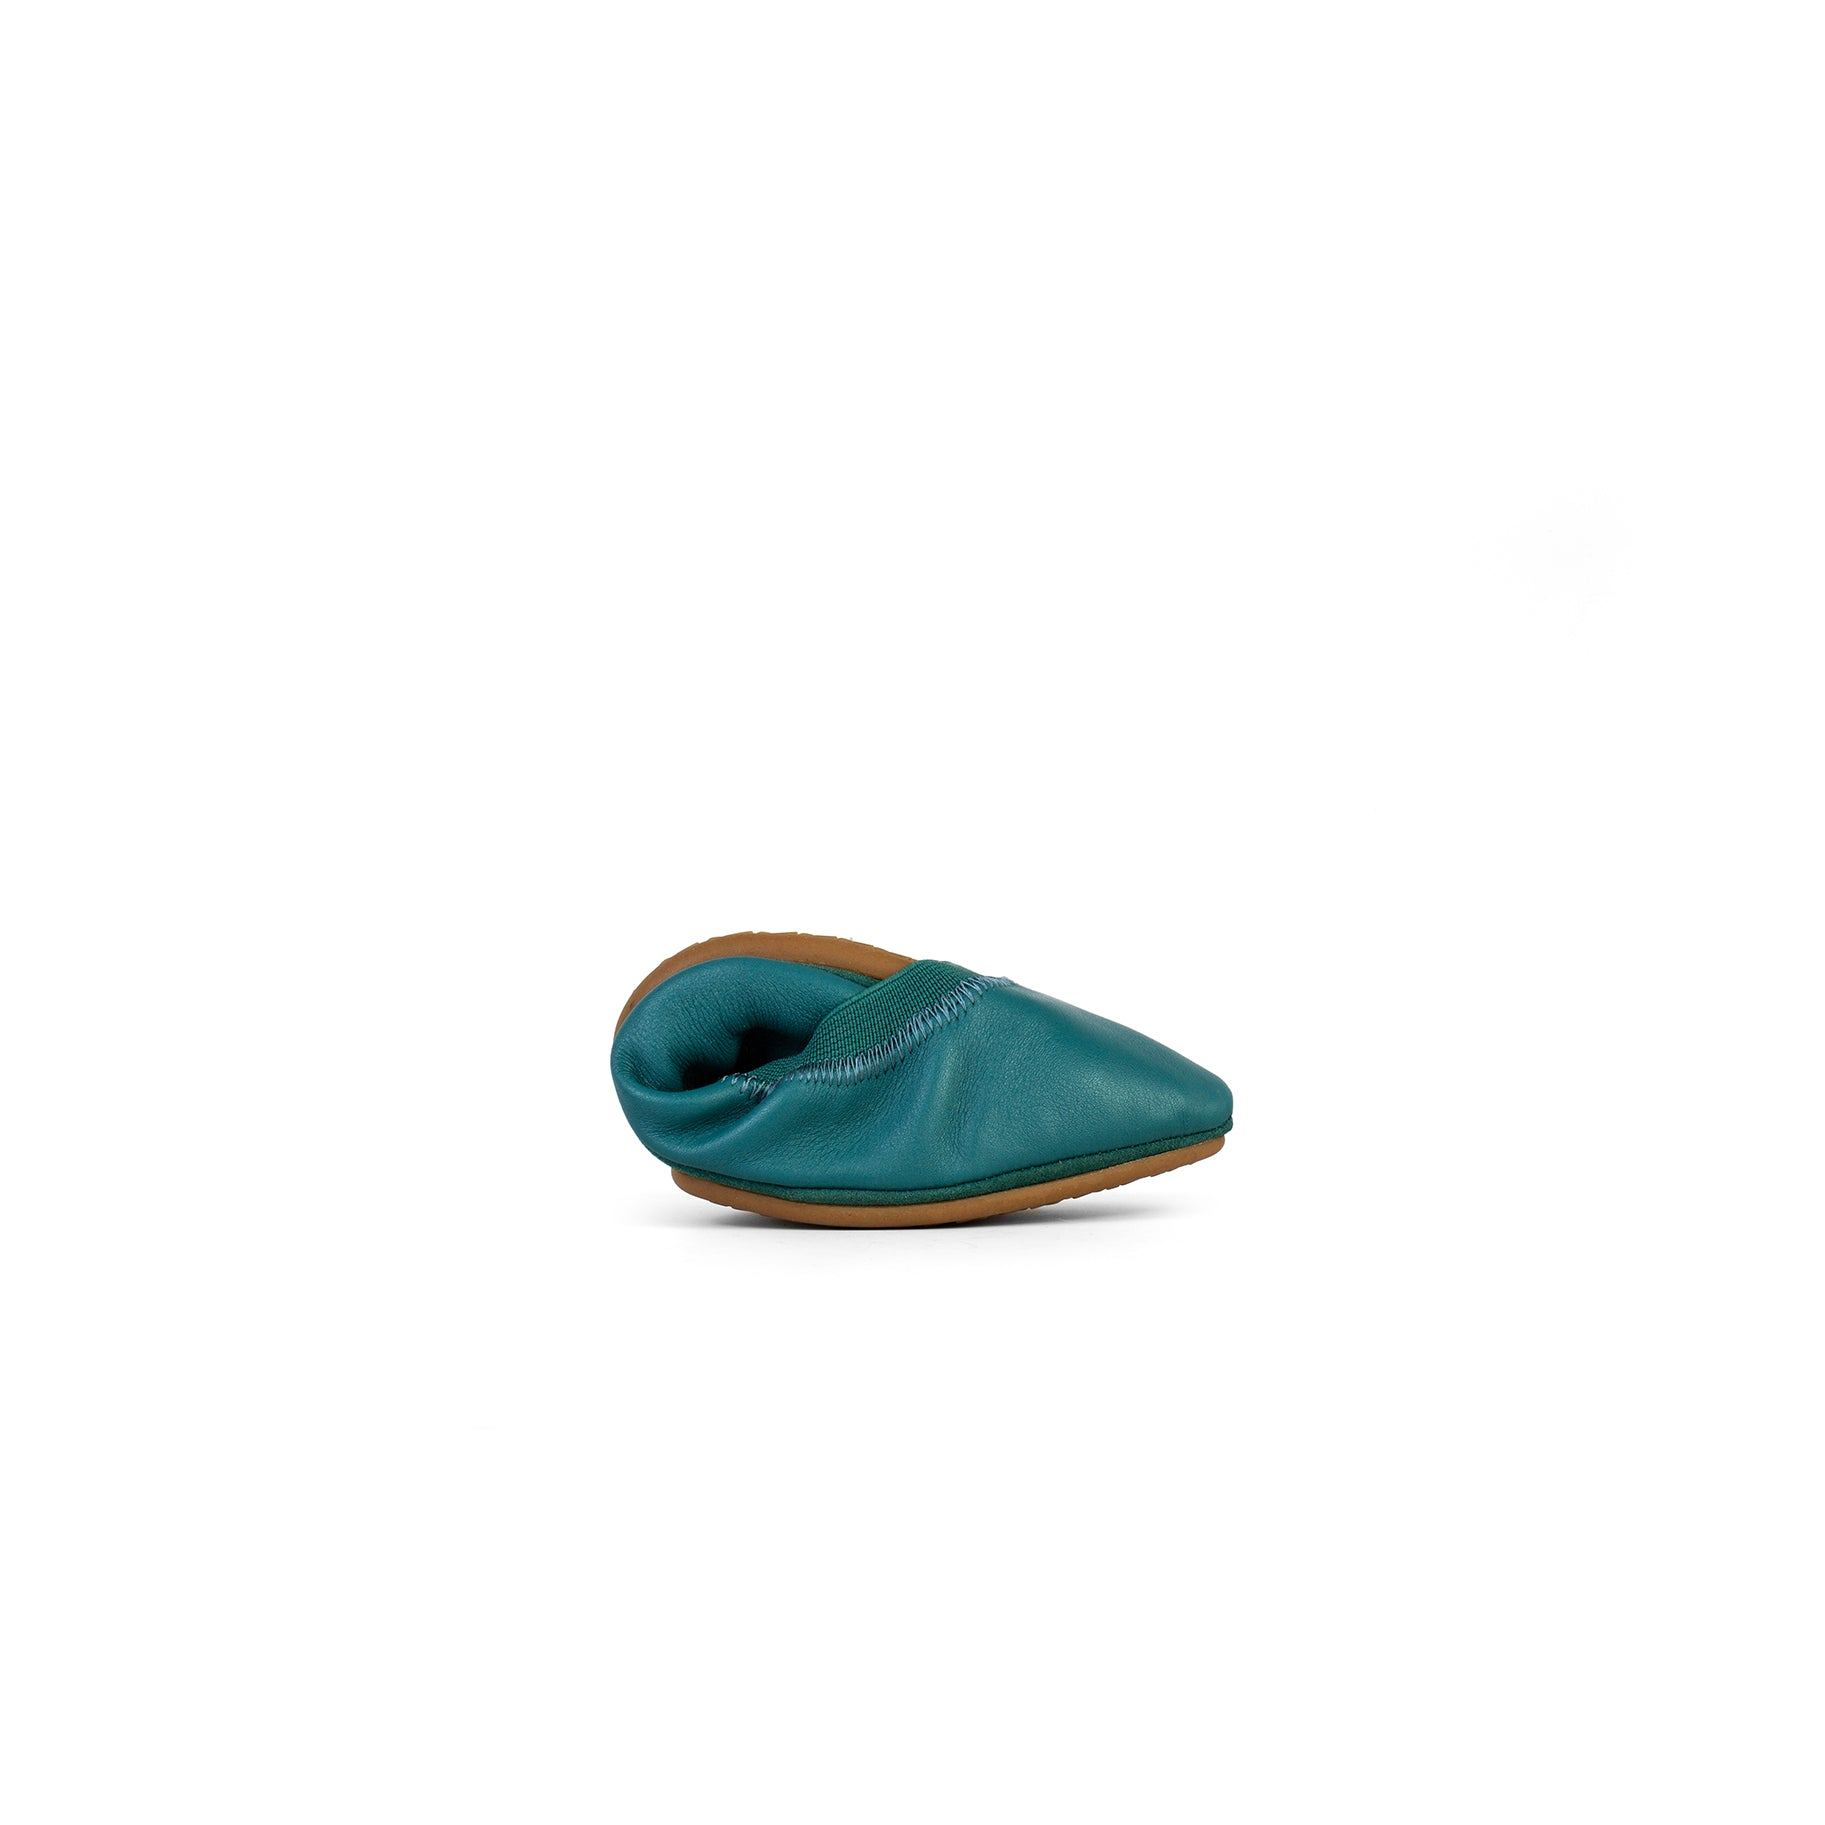 yosi samra teal blue green leather pointed foldable ballet flat